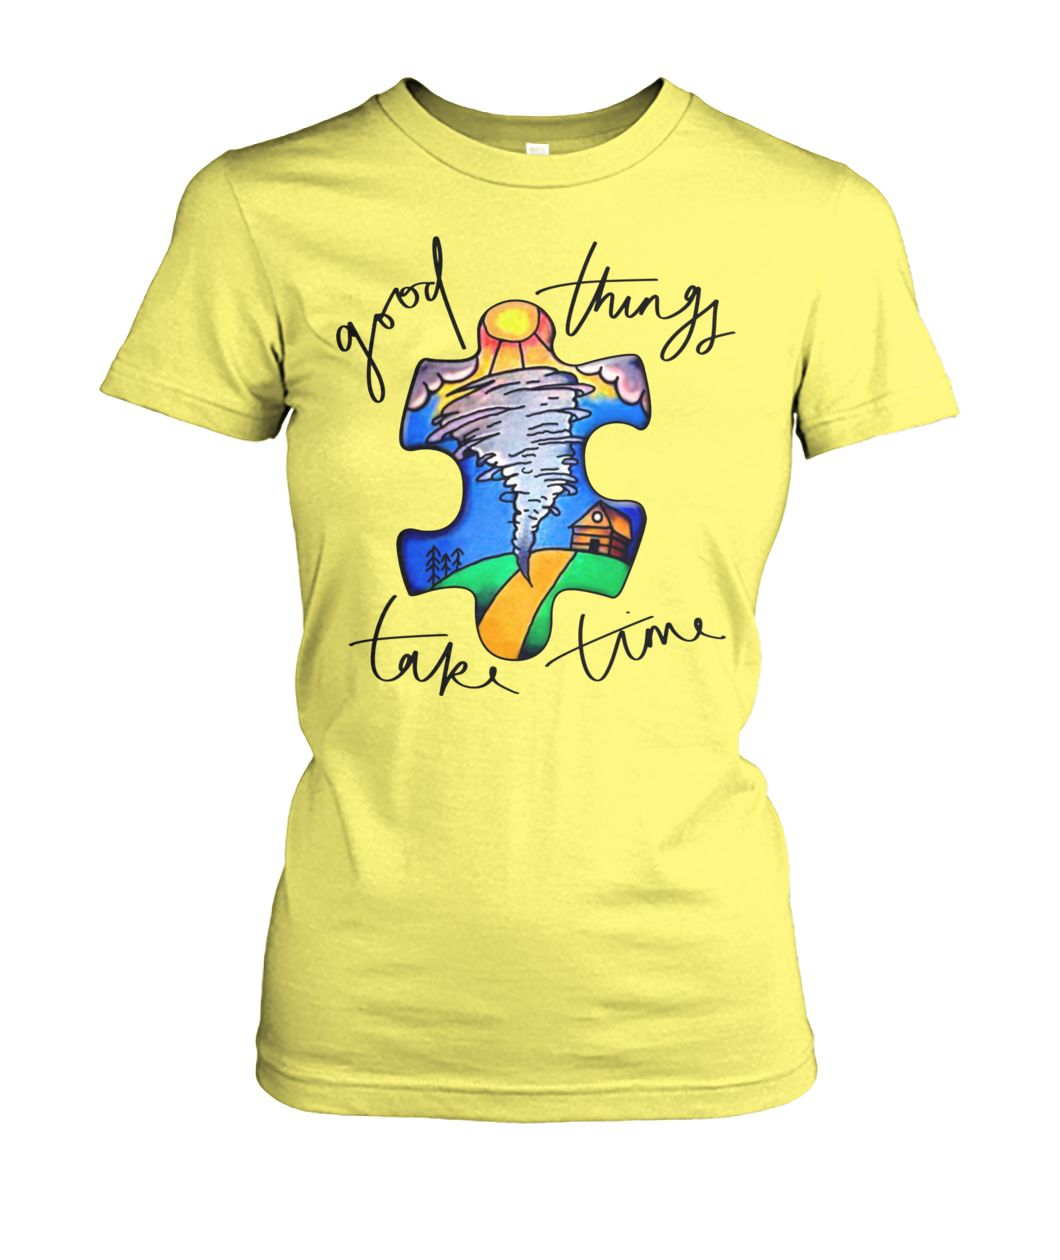 Autism awareness autism puzzle good things take time women's crew tee